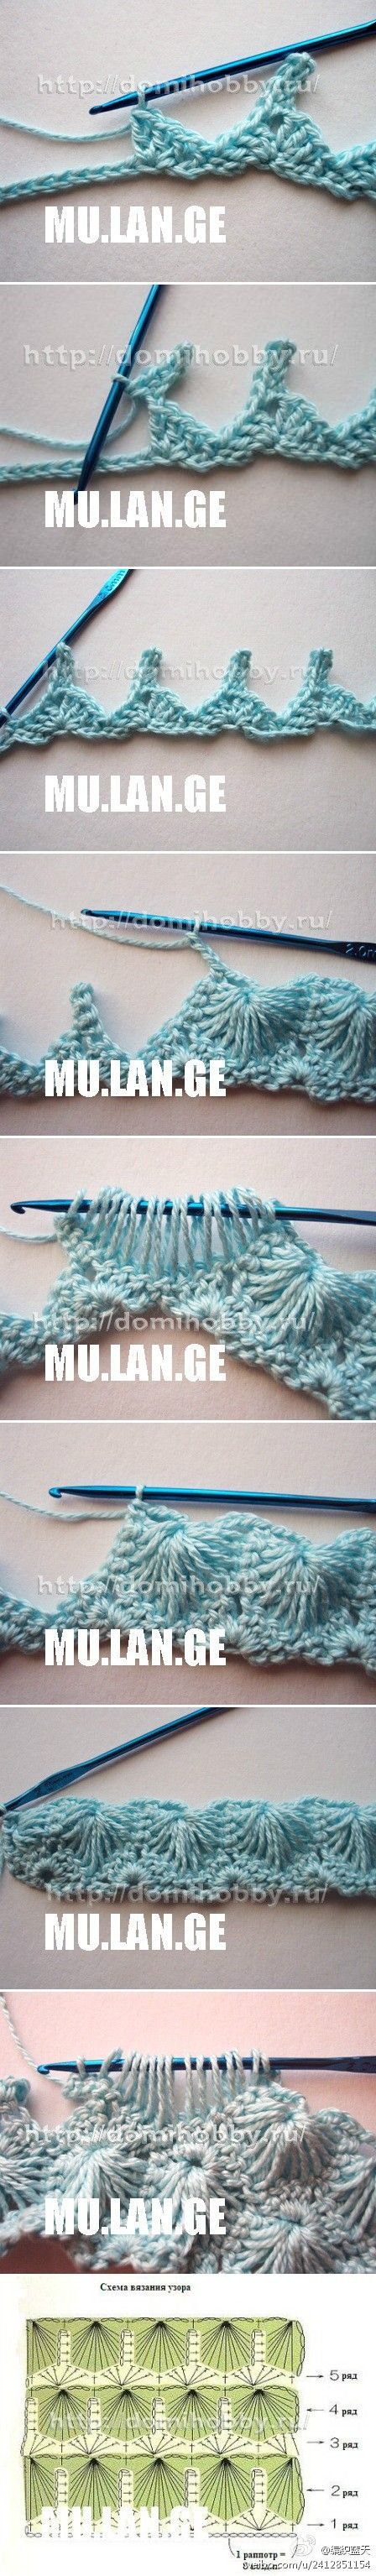 Very interesting and beautiful crochet stitch to try